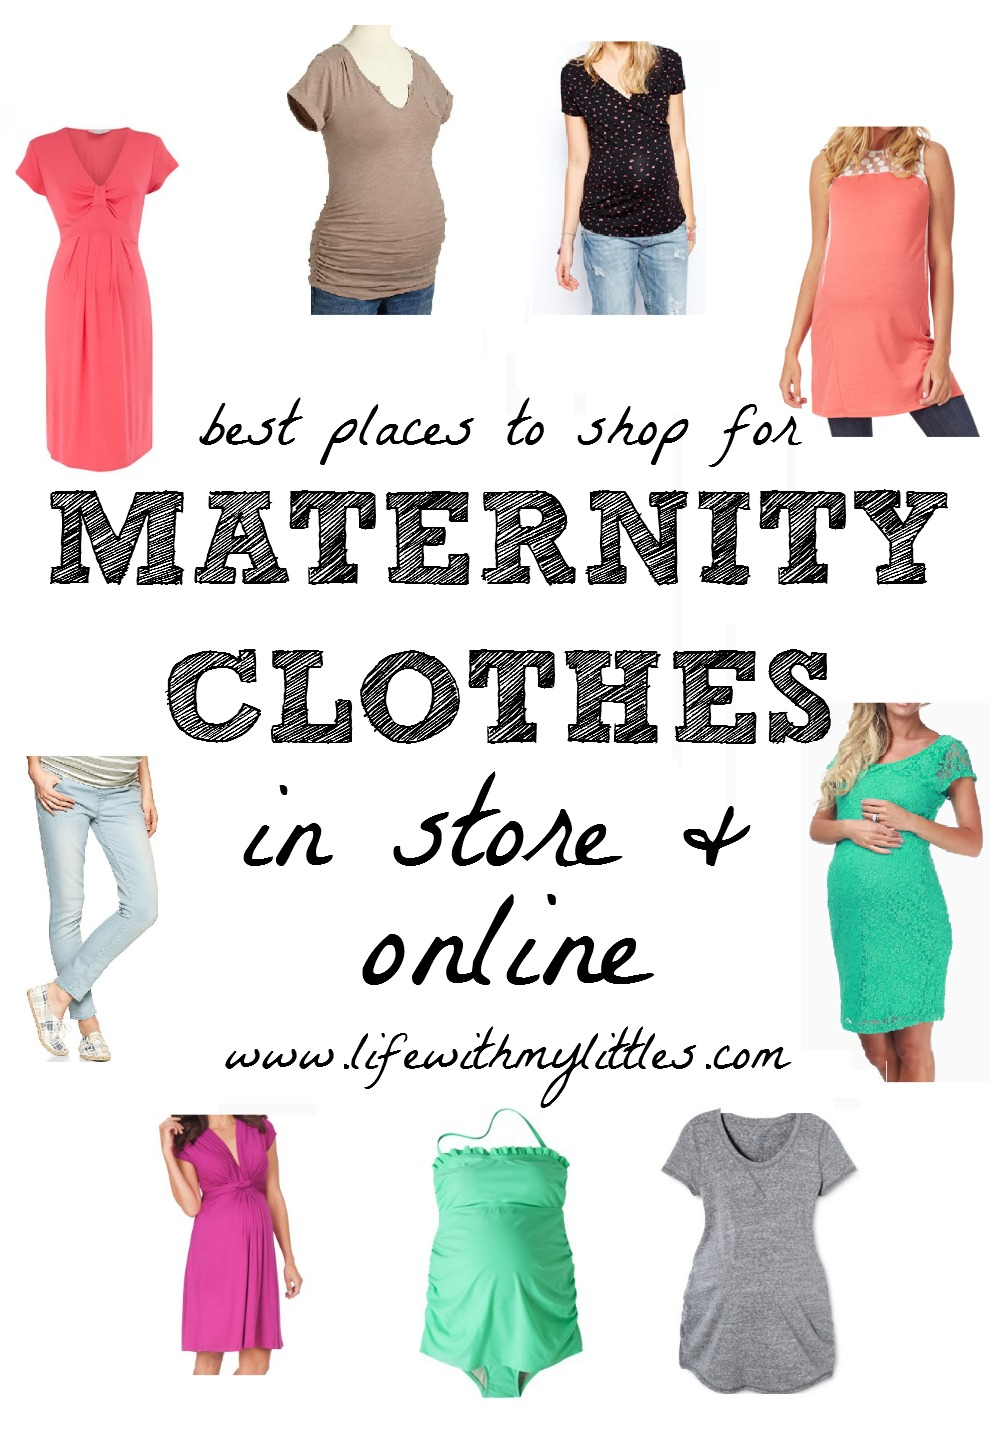 Pregnant clothing stores